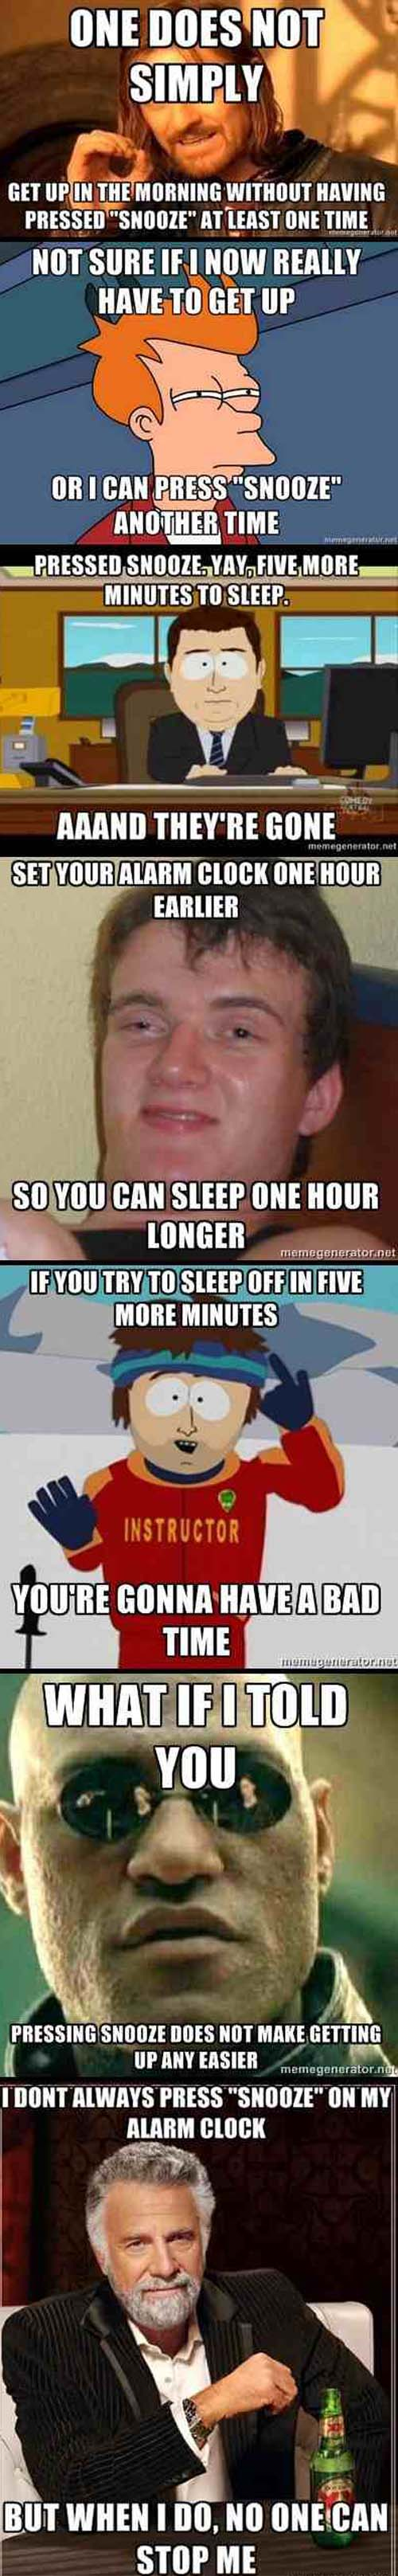 Snooze Alarm Explained By Memes